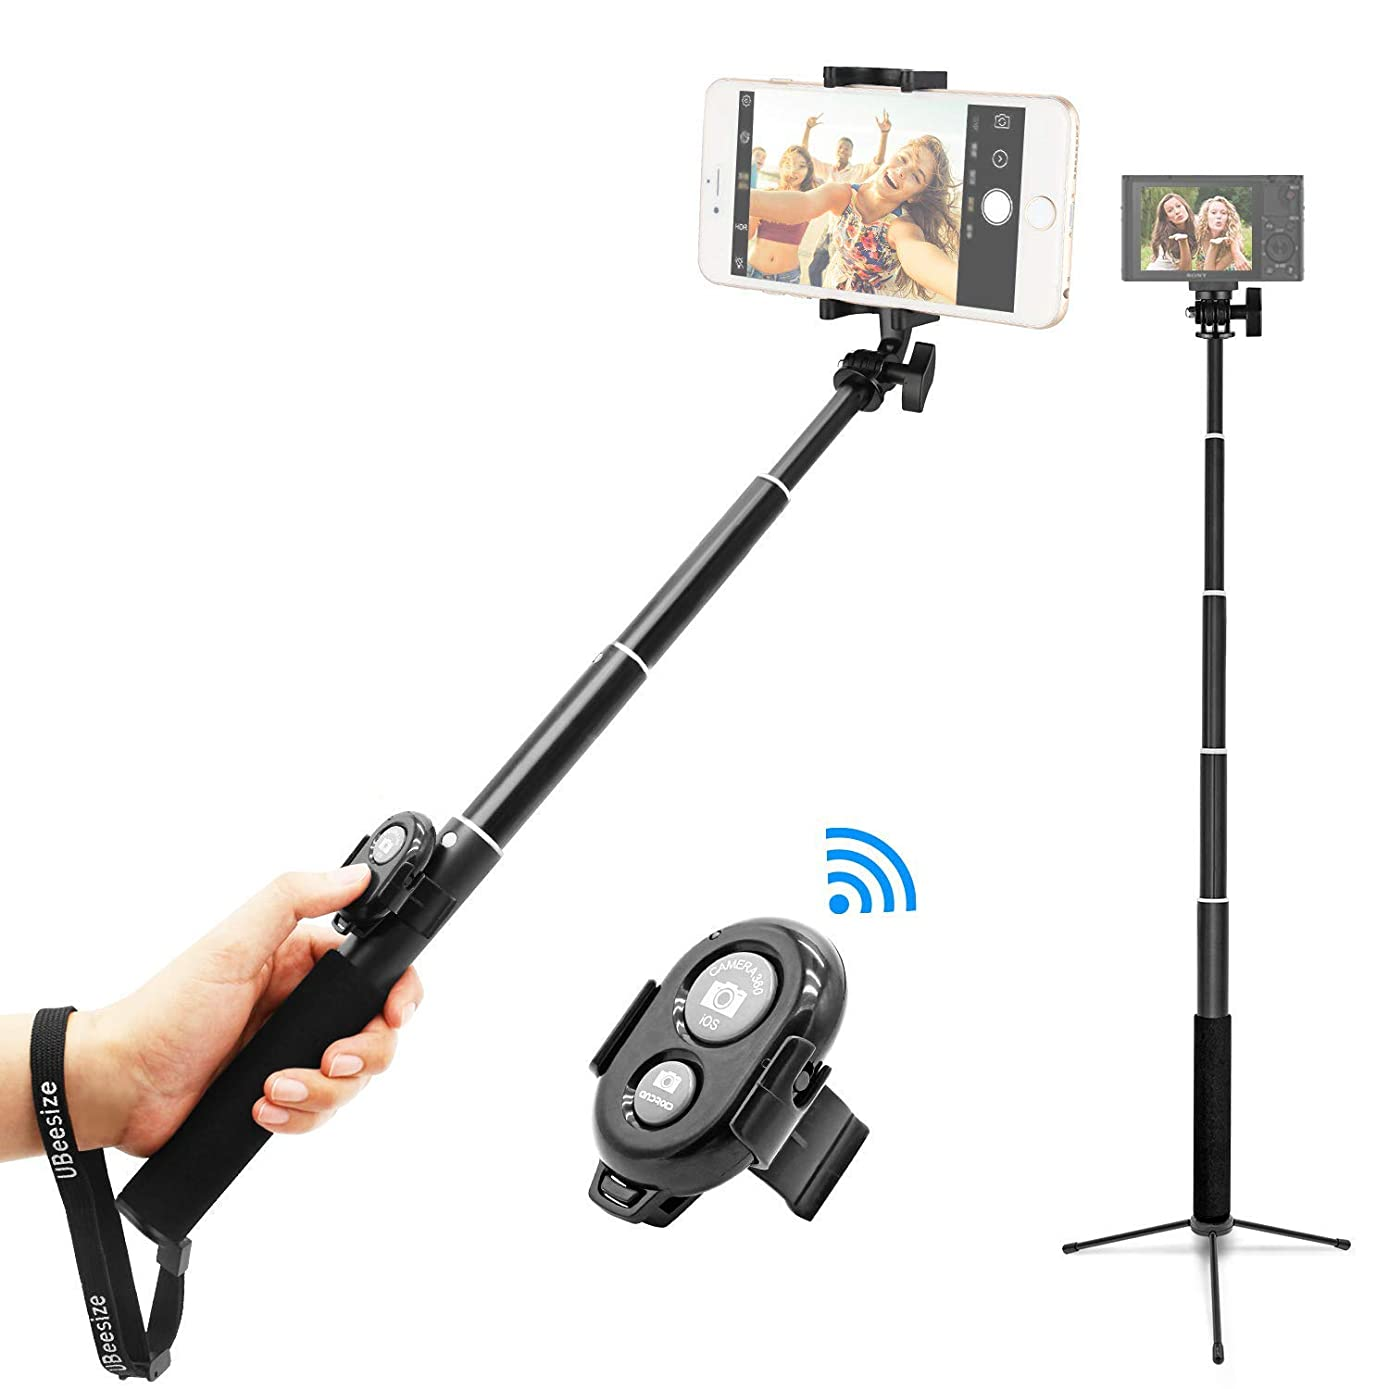 Selfie Stick, UBeesize Extendable Monopod with Tripod Stand and Wireless Shutter Remote, Compatible with iPhone, Samsung, Other Android Phones, Digital Cameras and GoPro